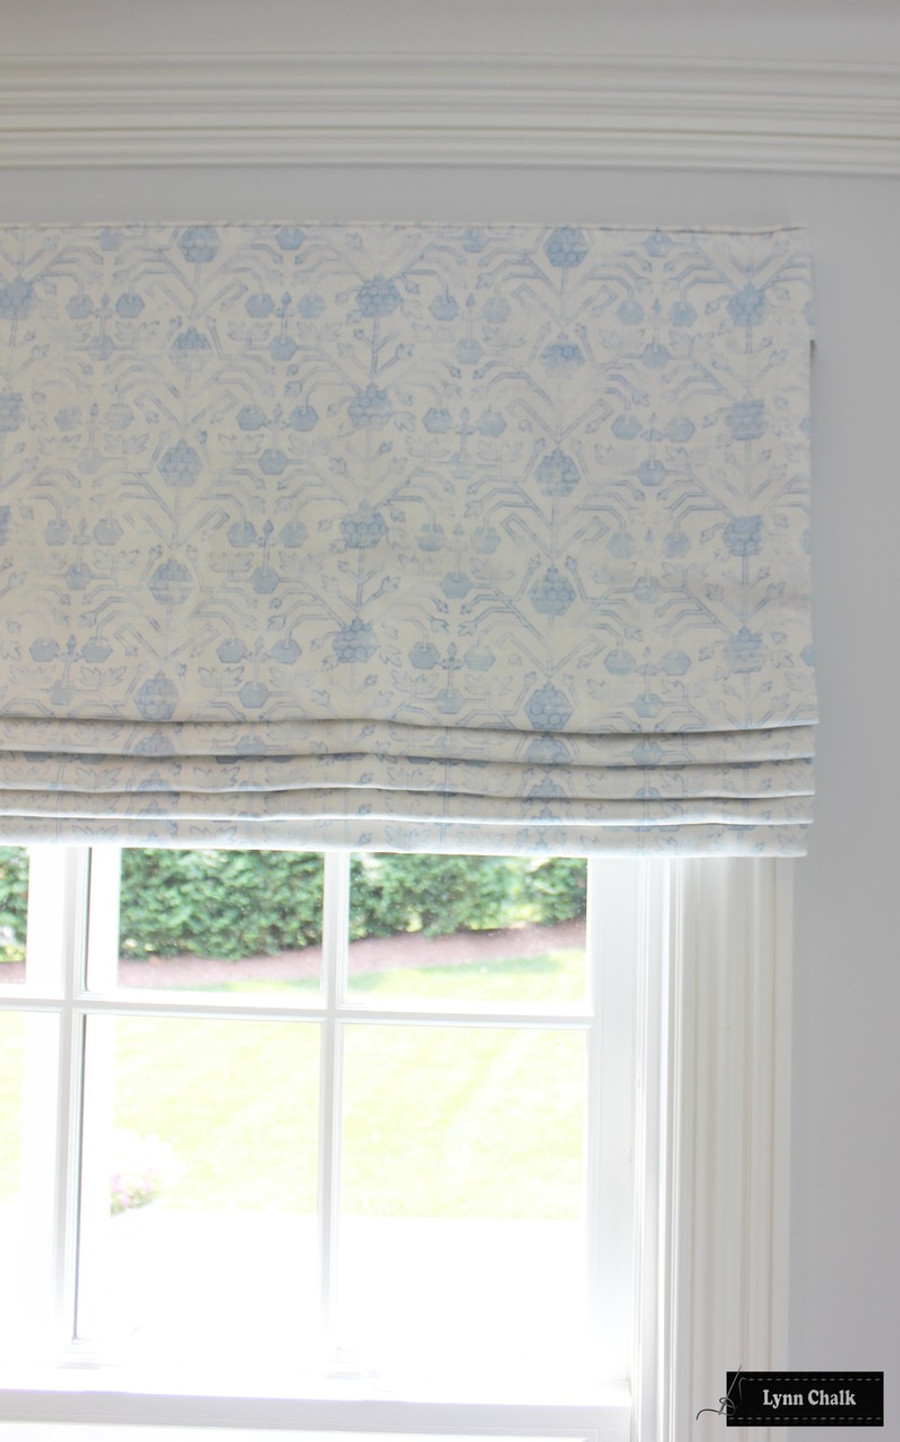 Zak & Fox Khotan Roman Shade (shown in Pembe-comes in other colors)